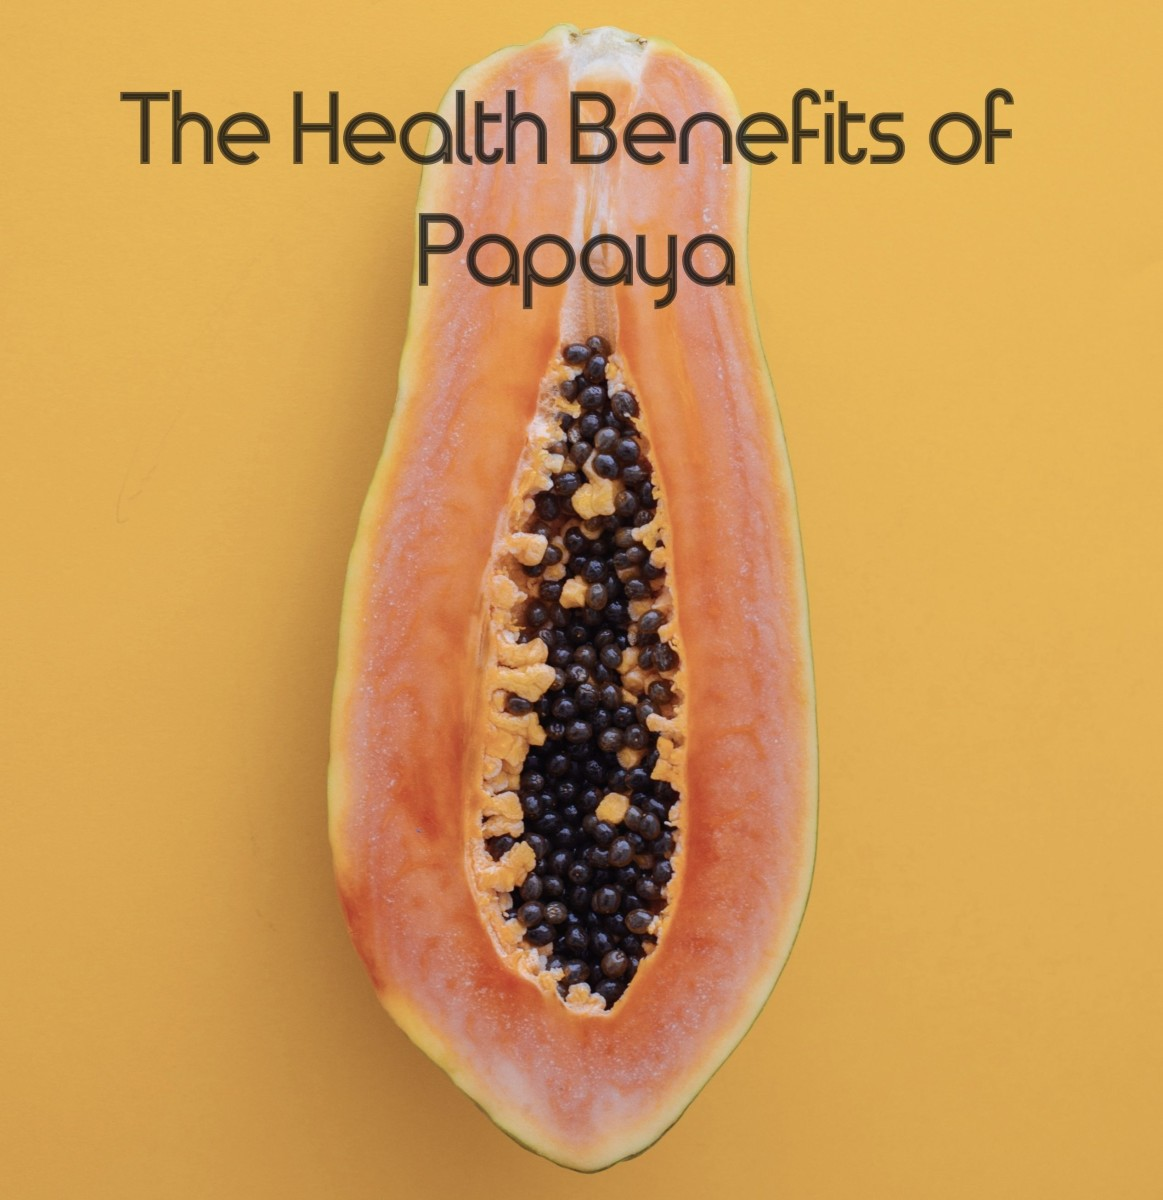 Papaya is not only delicious, it offers a wide variety of health benefits.